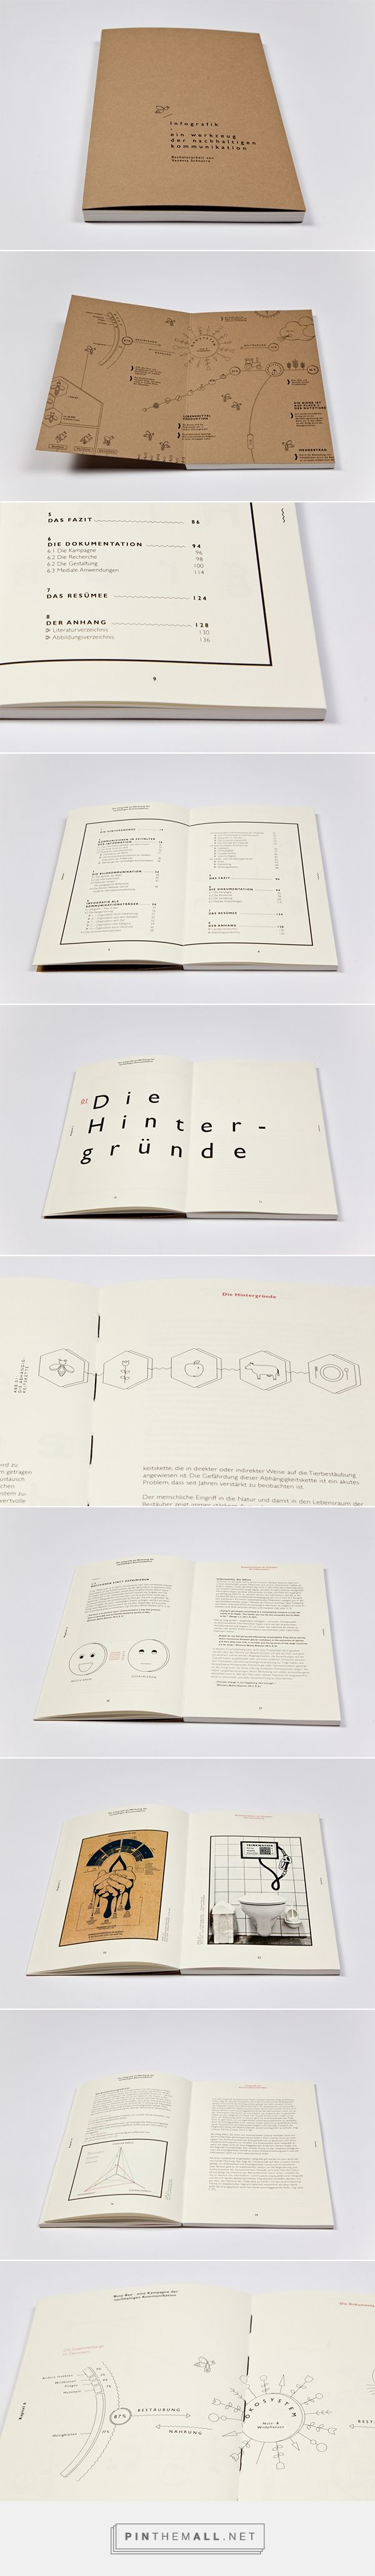 Information graphics thesis by Vanessa Schnurre